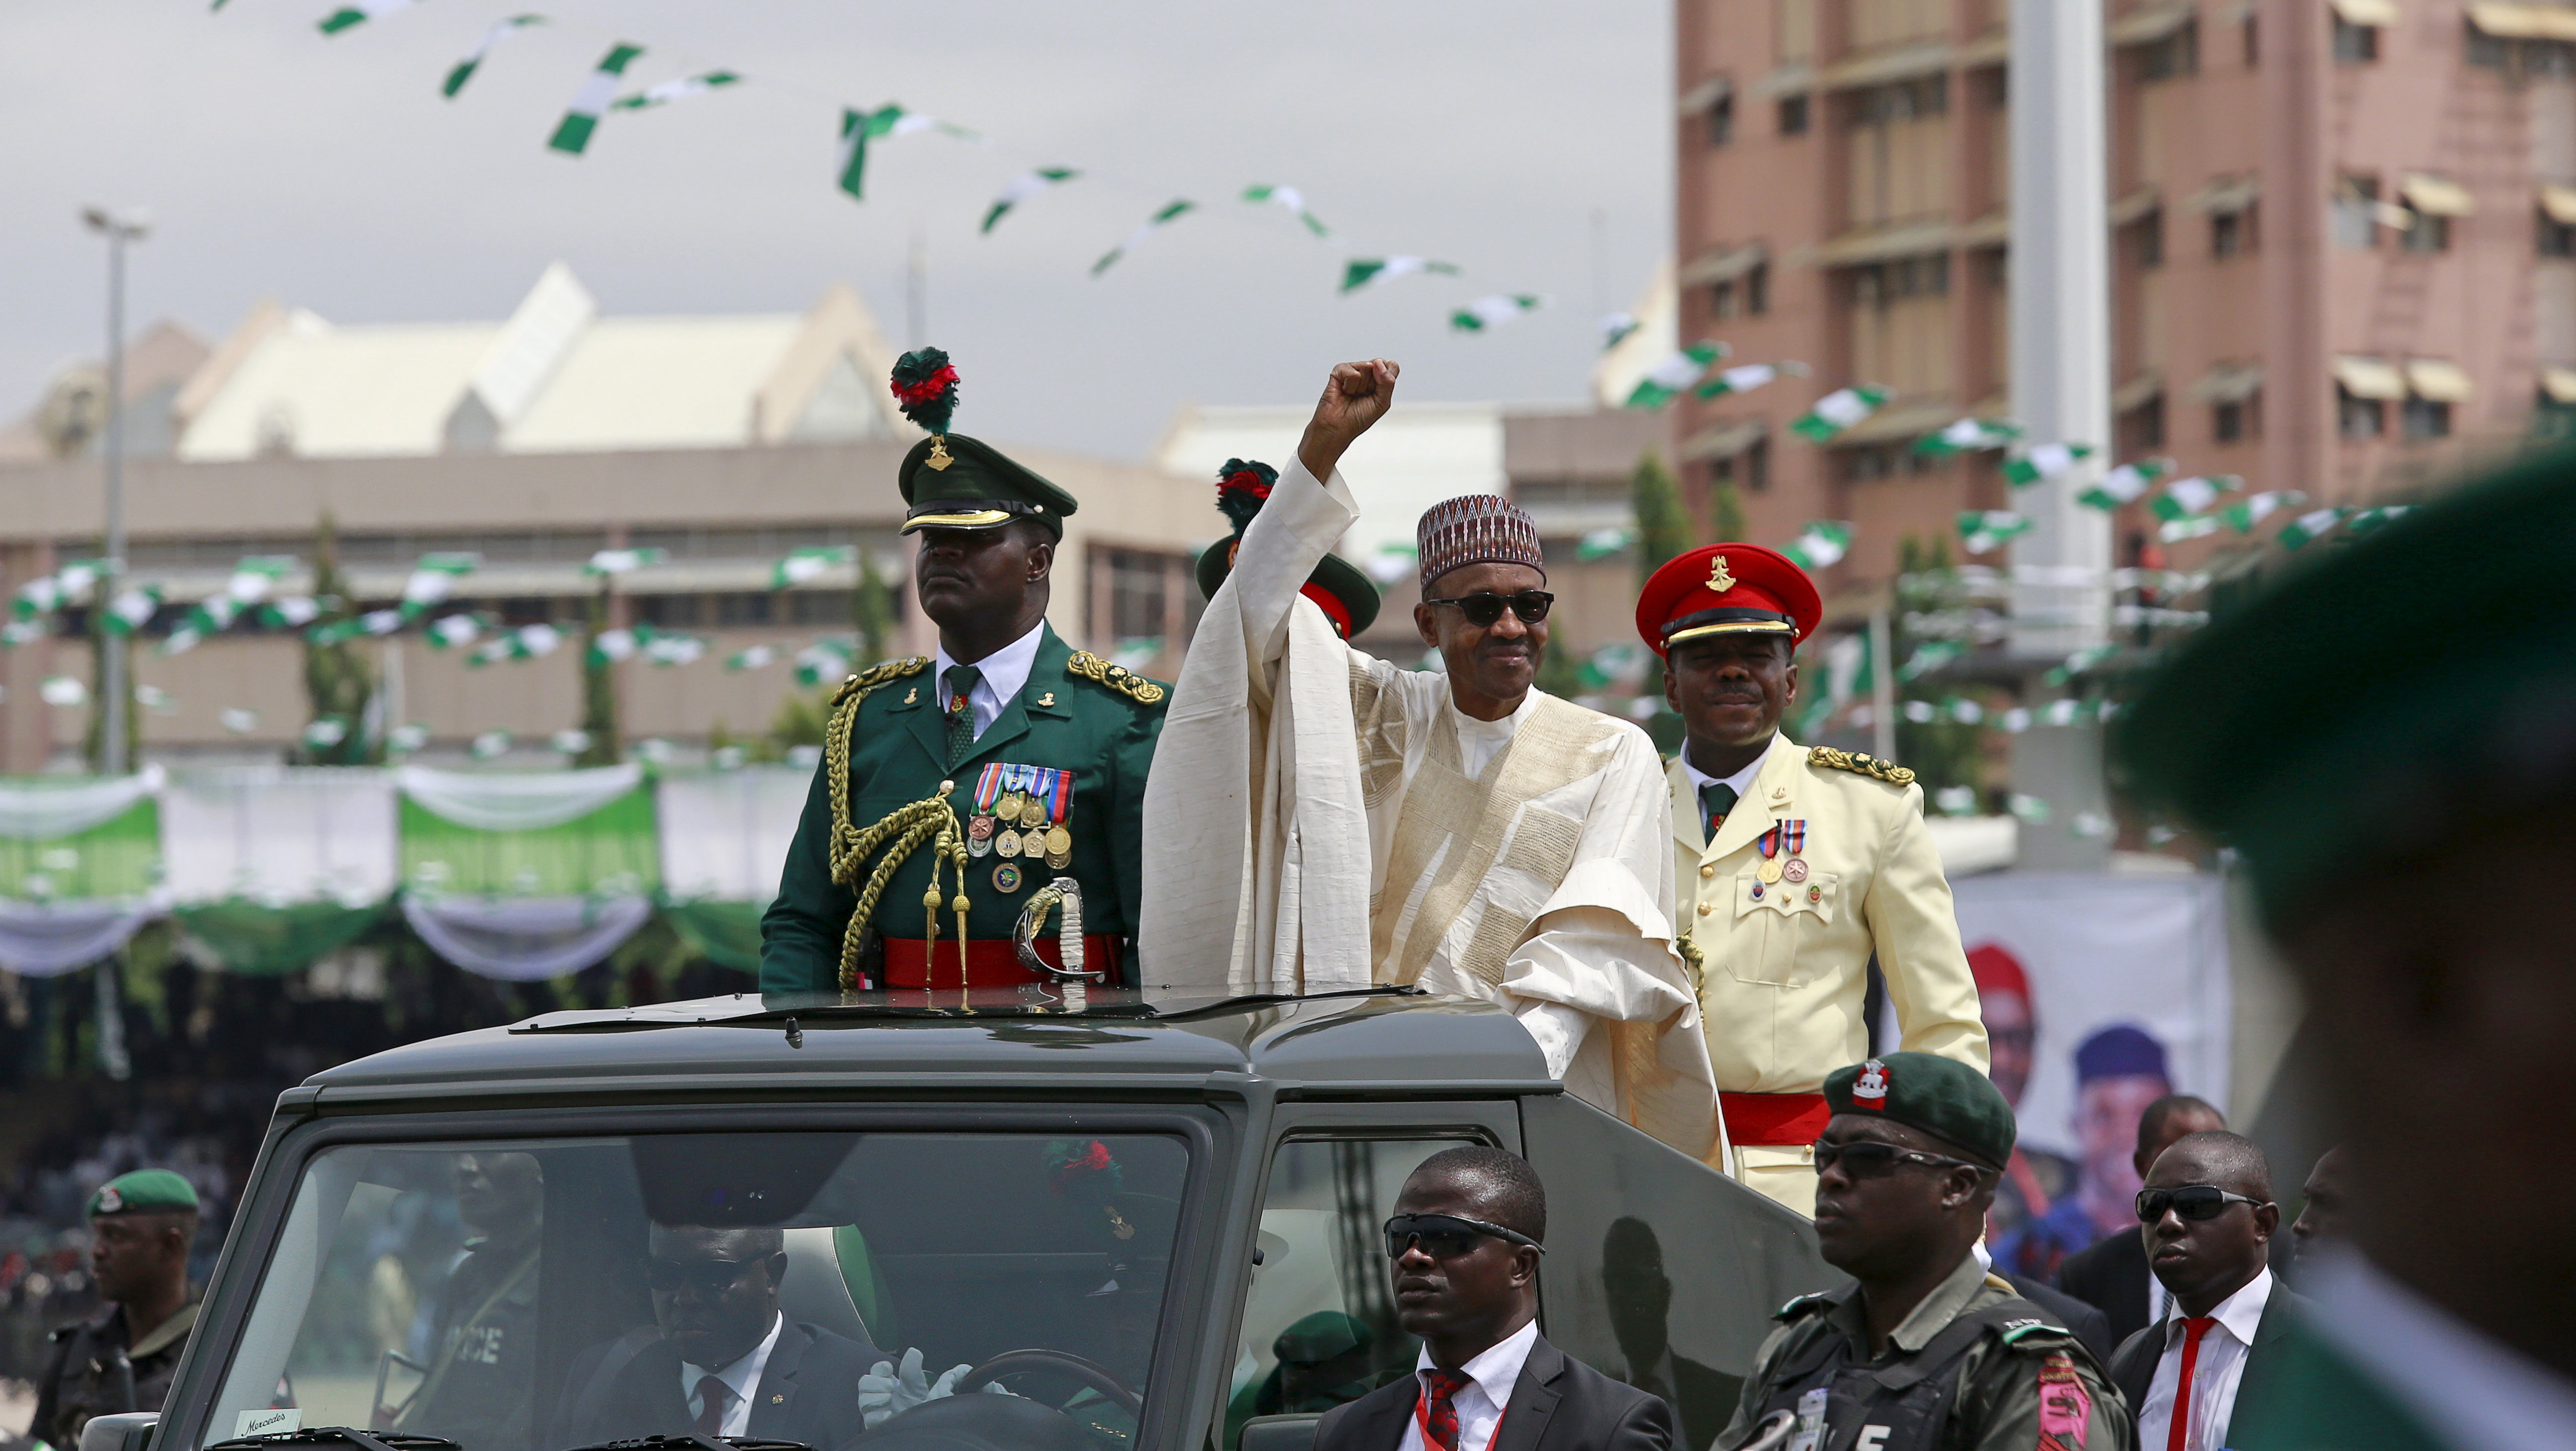 Nigerian President Vows to Tackle 'Godless' Boko Haram In Inauguration Ceremony